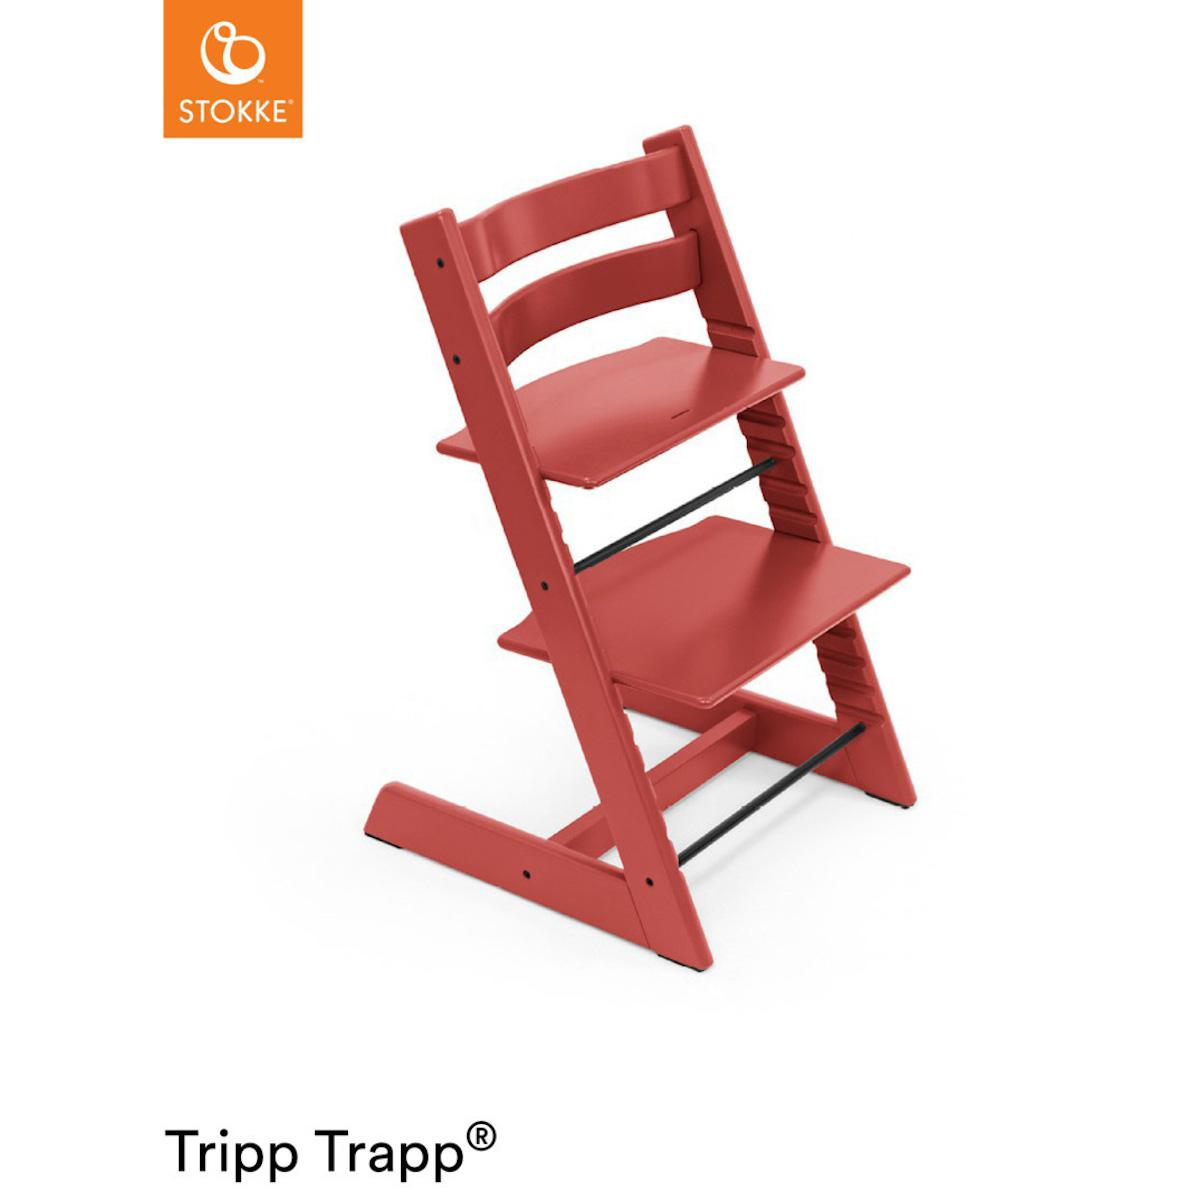 Chaise haute TRIPP TRAPP Stokke Warm Red